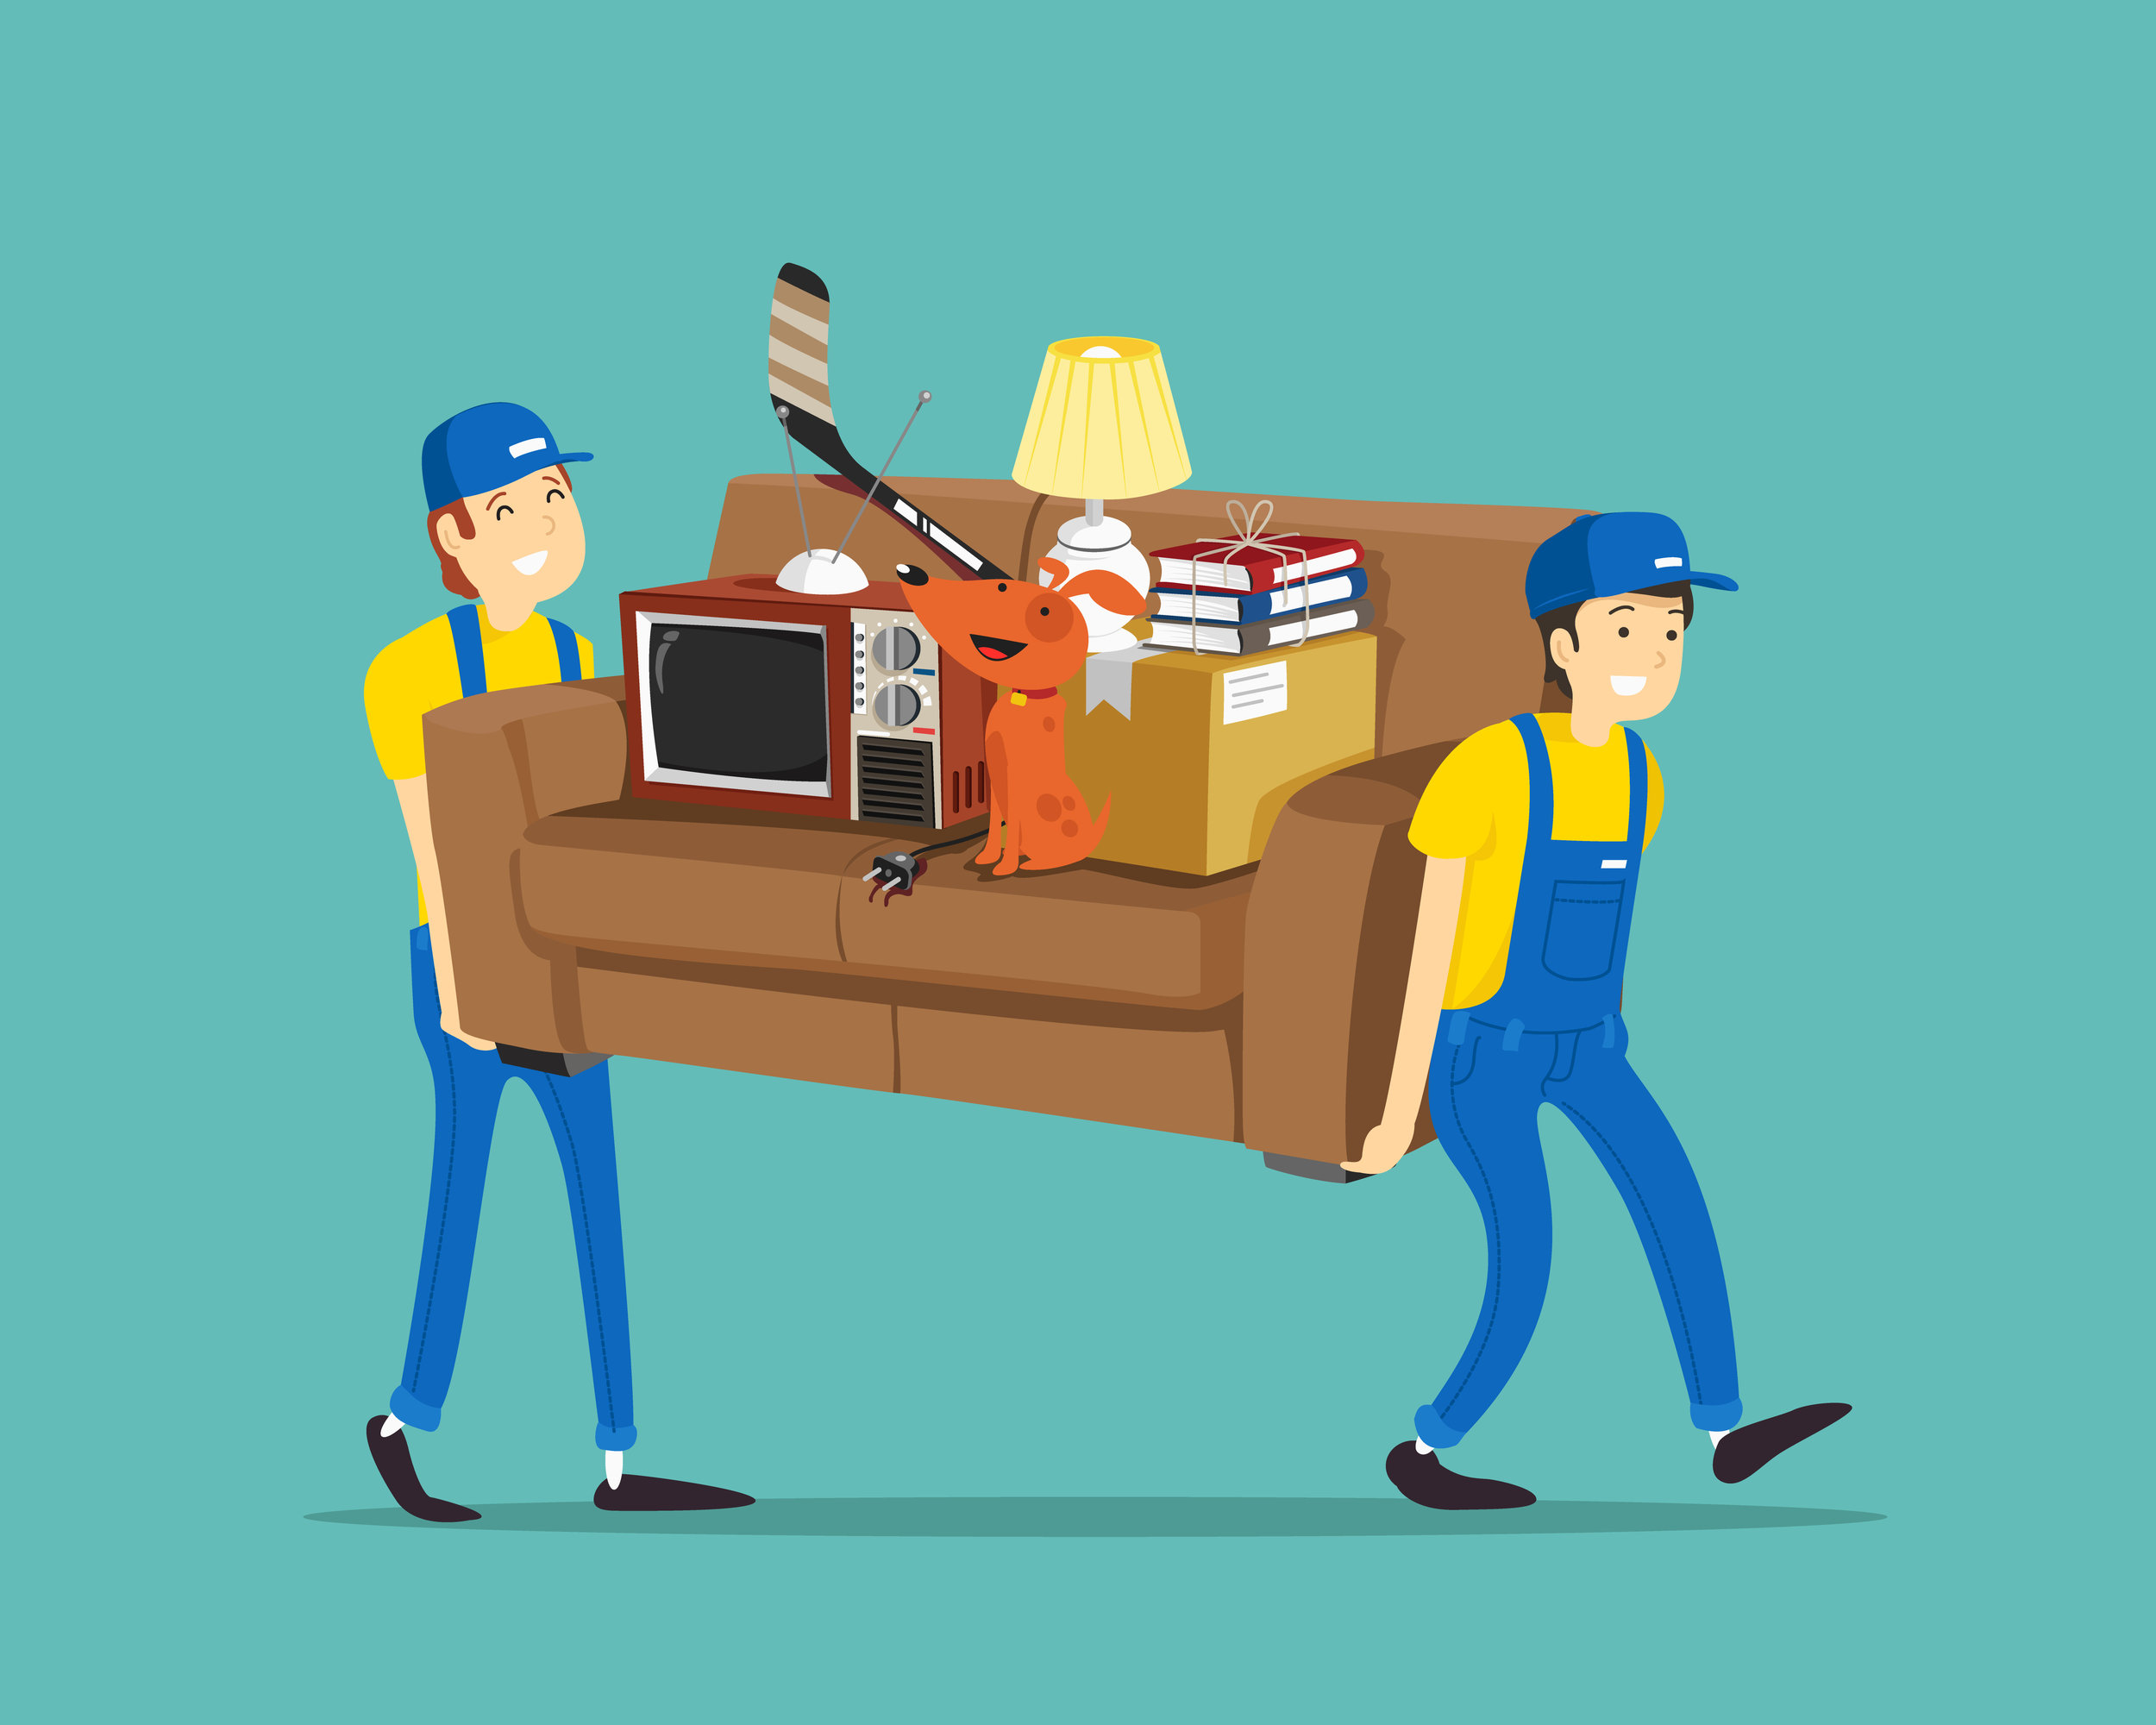 Movers using a couch to move other items to save on boxes/supplies